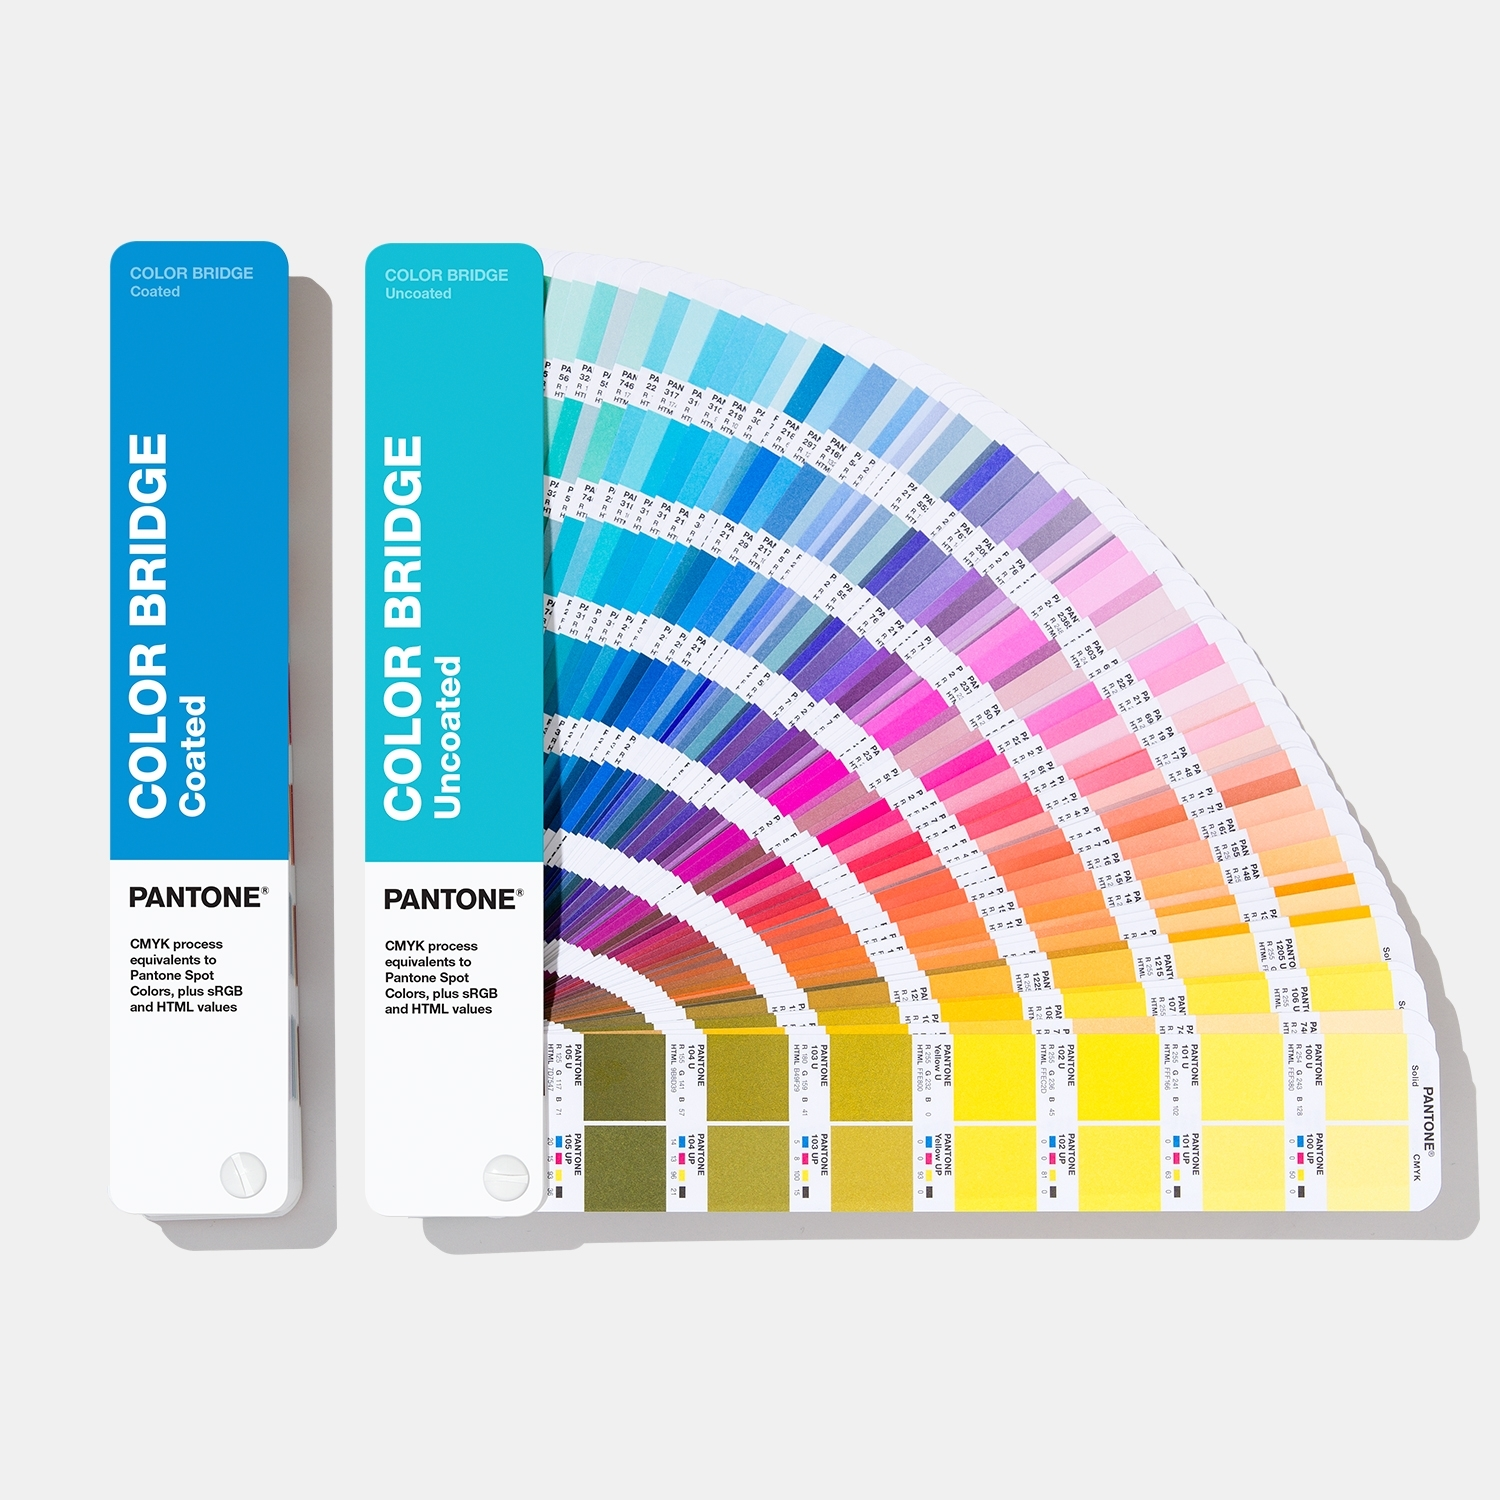 Pantone Color Bridge Uncoated - View 2